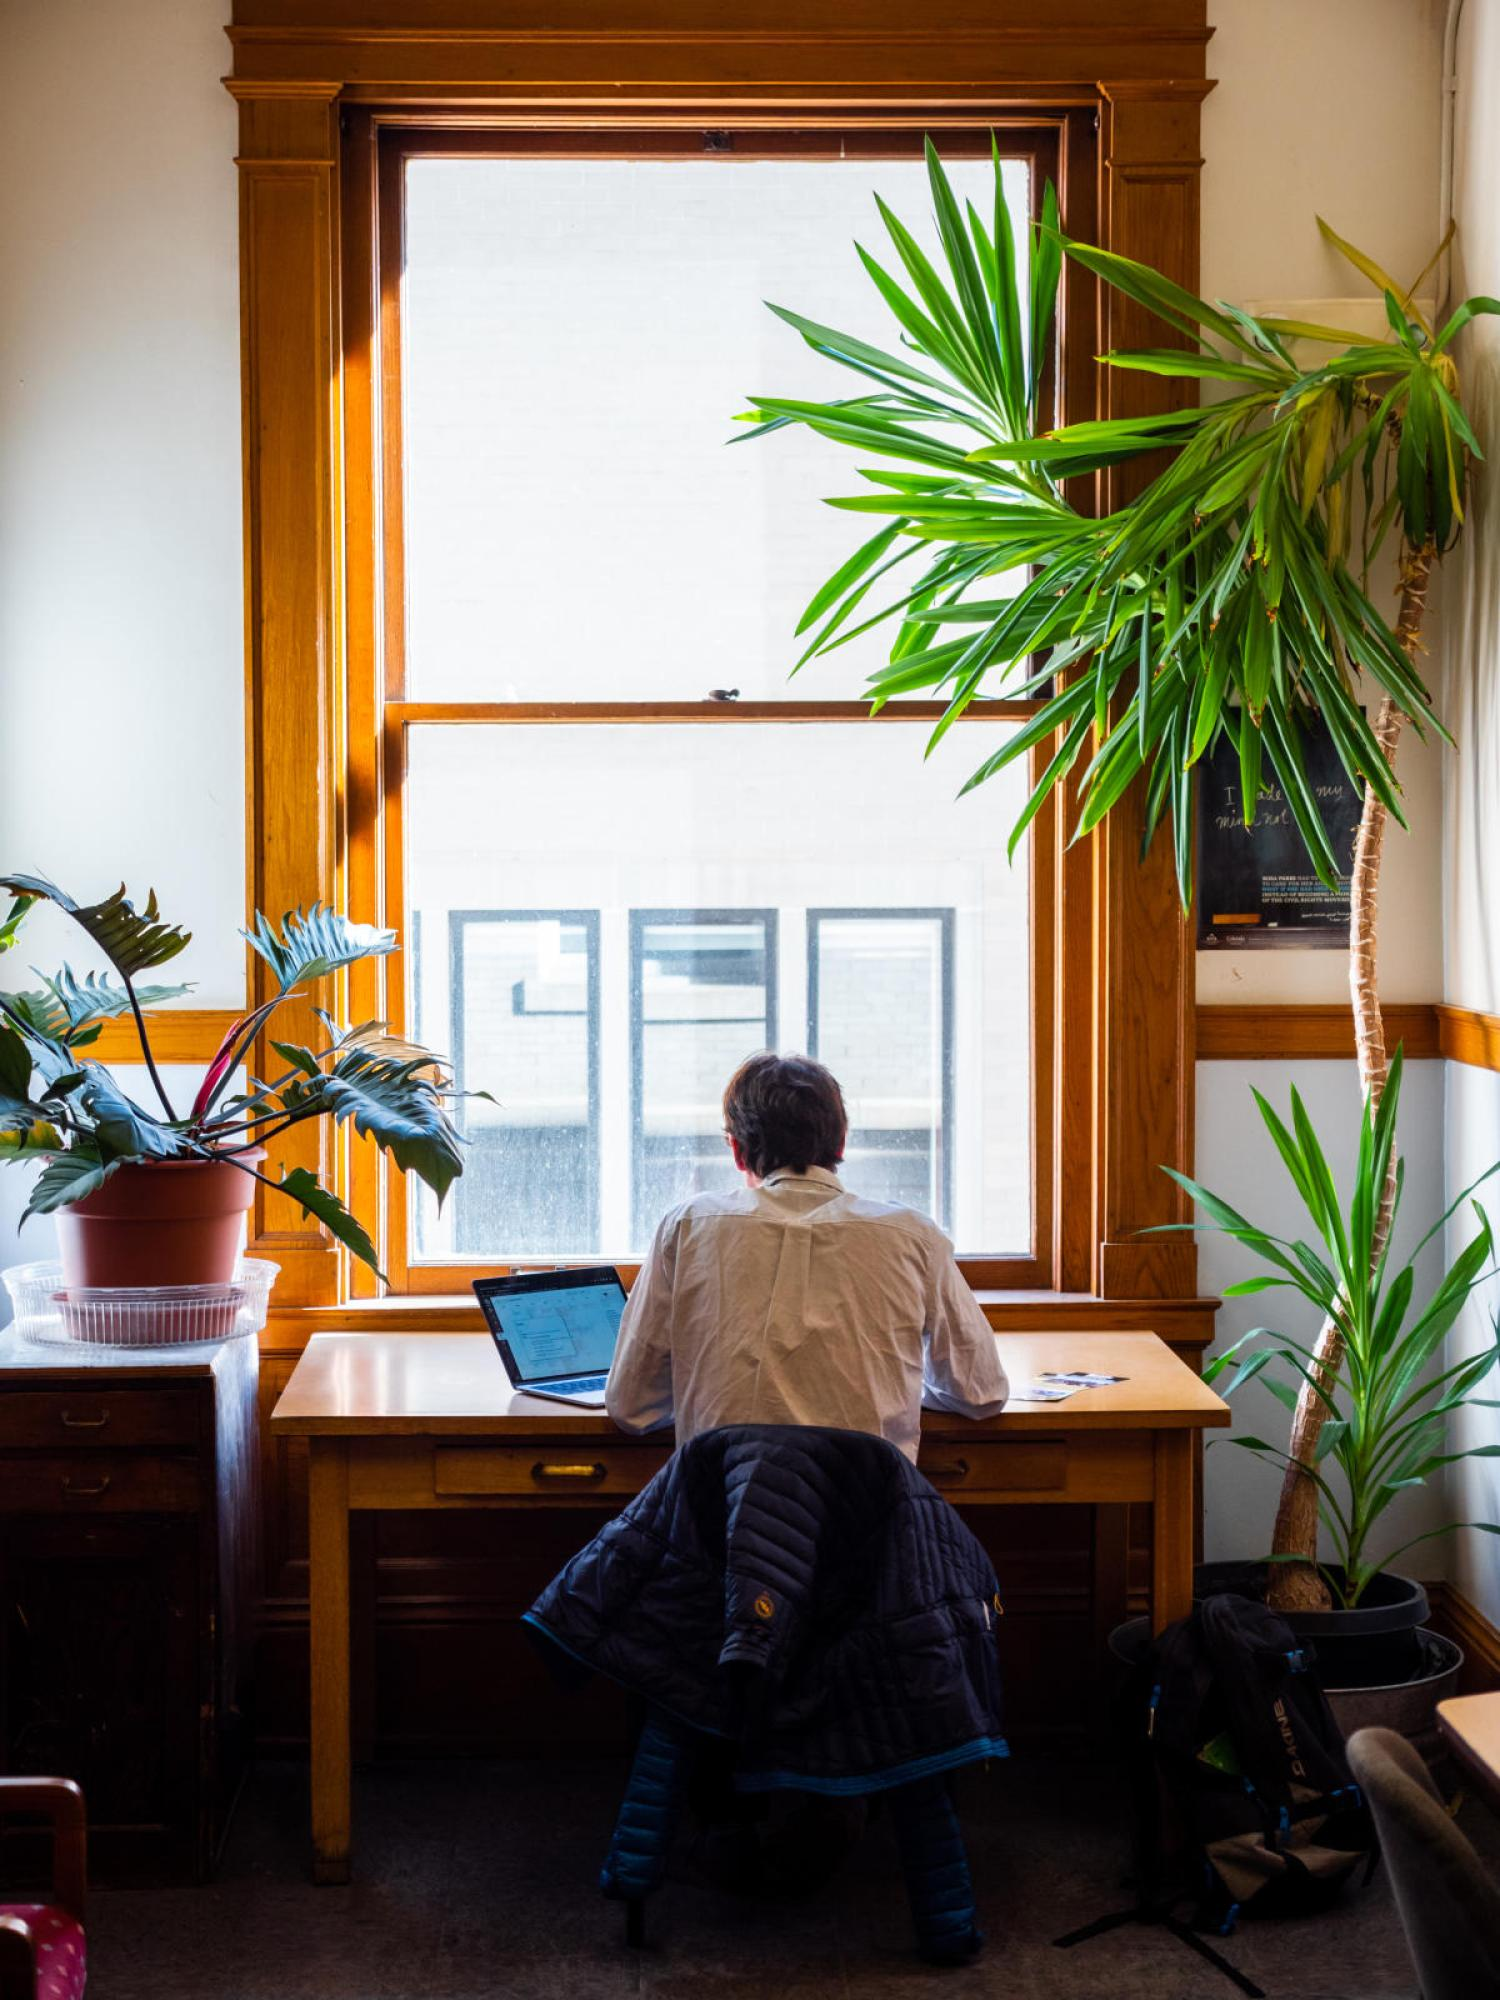 A student studying at a desk by a window and a plant